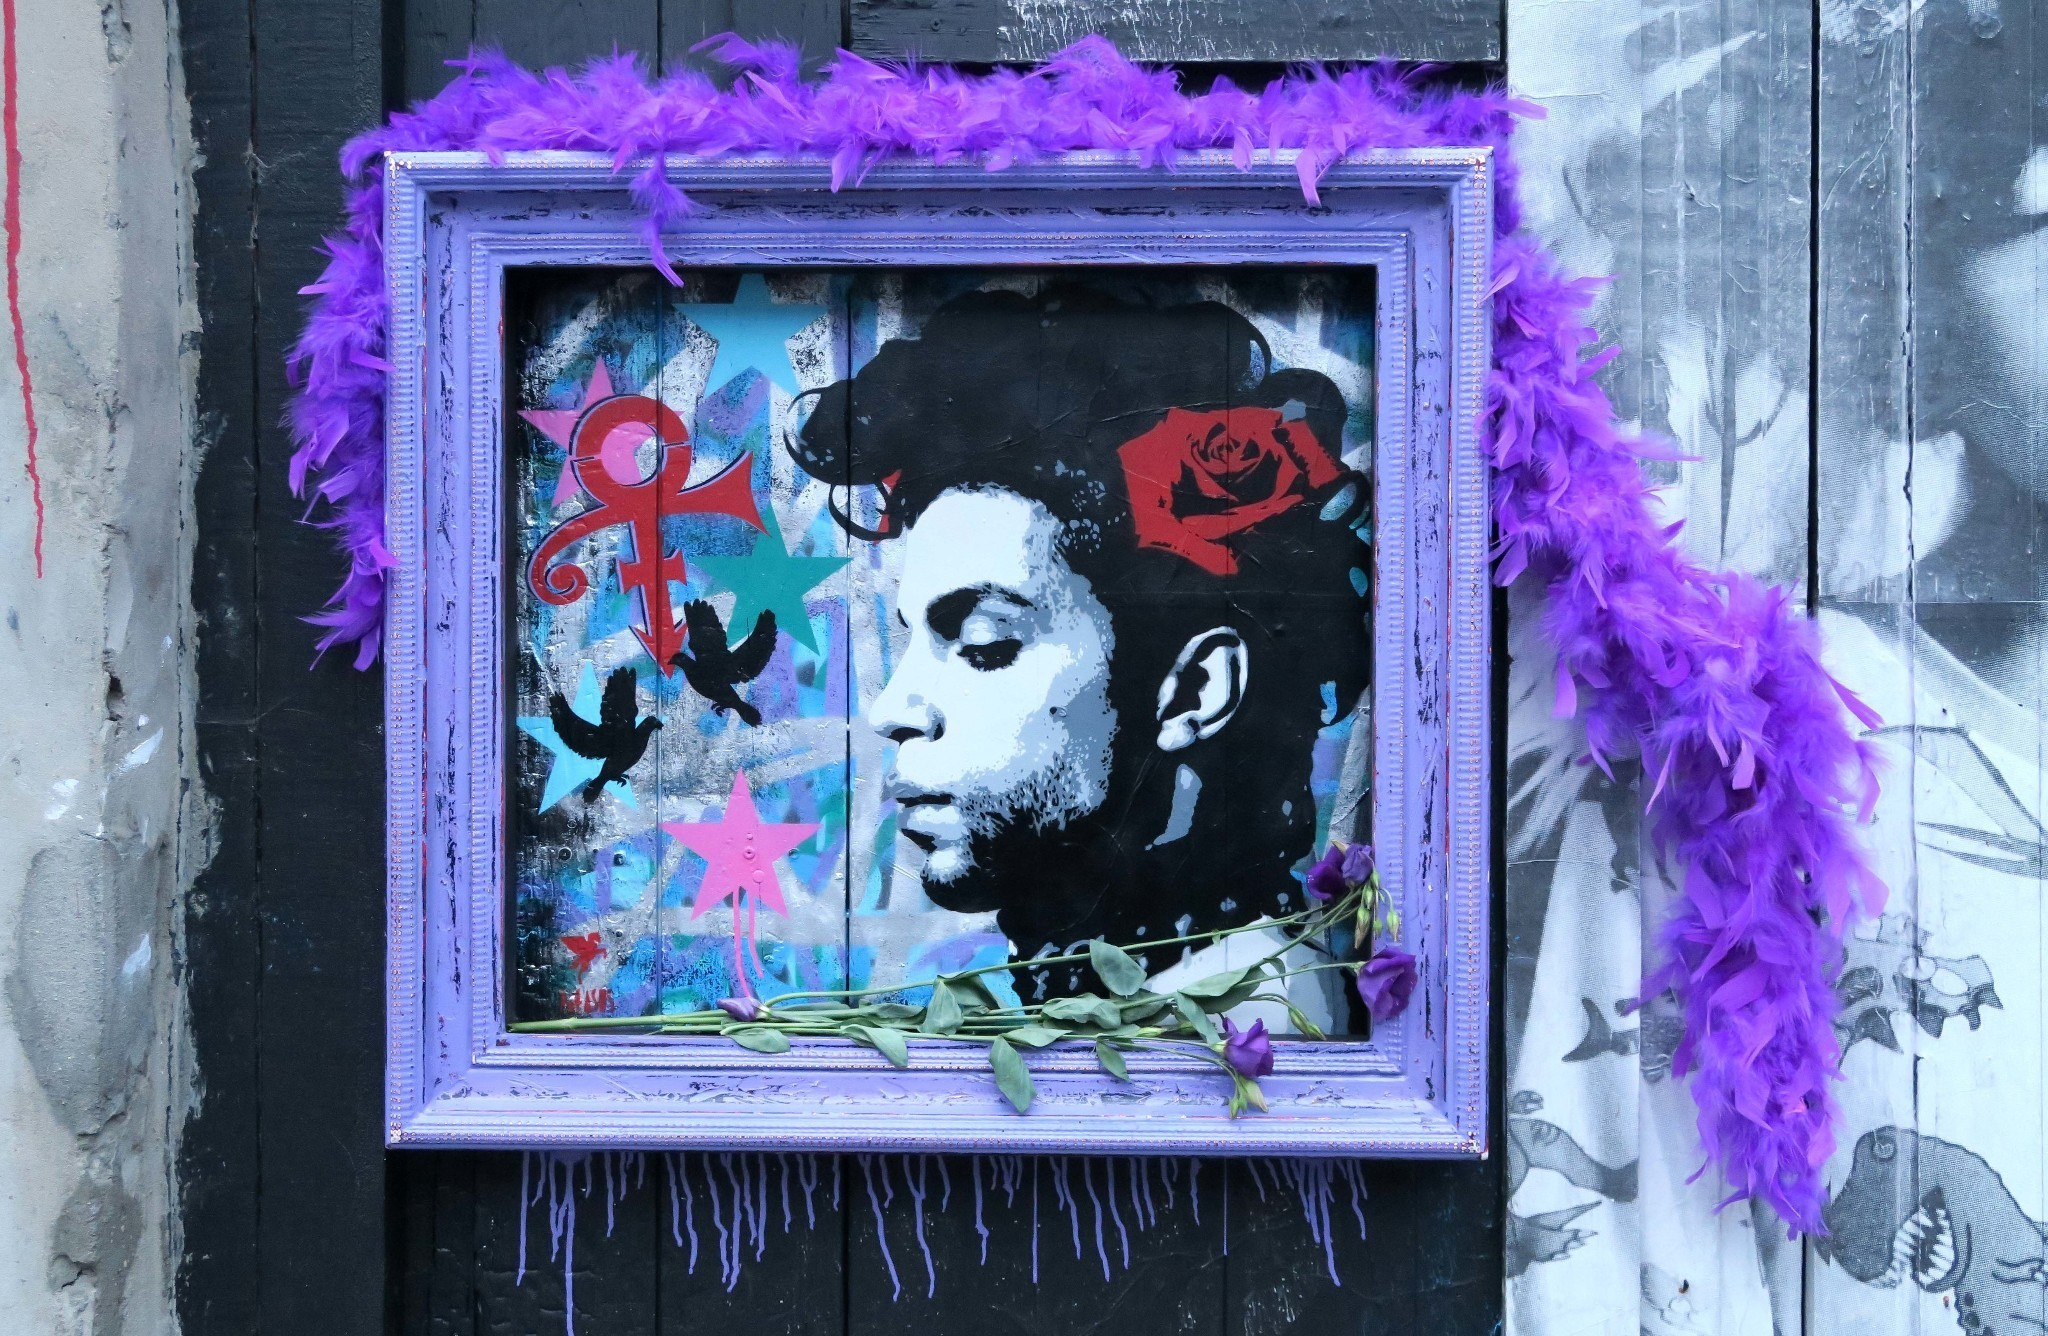 Musician Prince Died Of Accidental Overdose, Says Medical Examiner